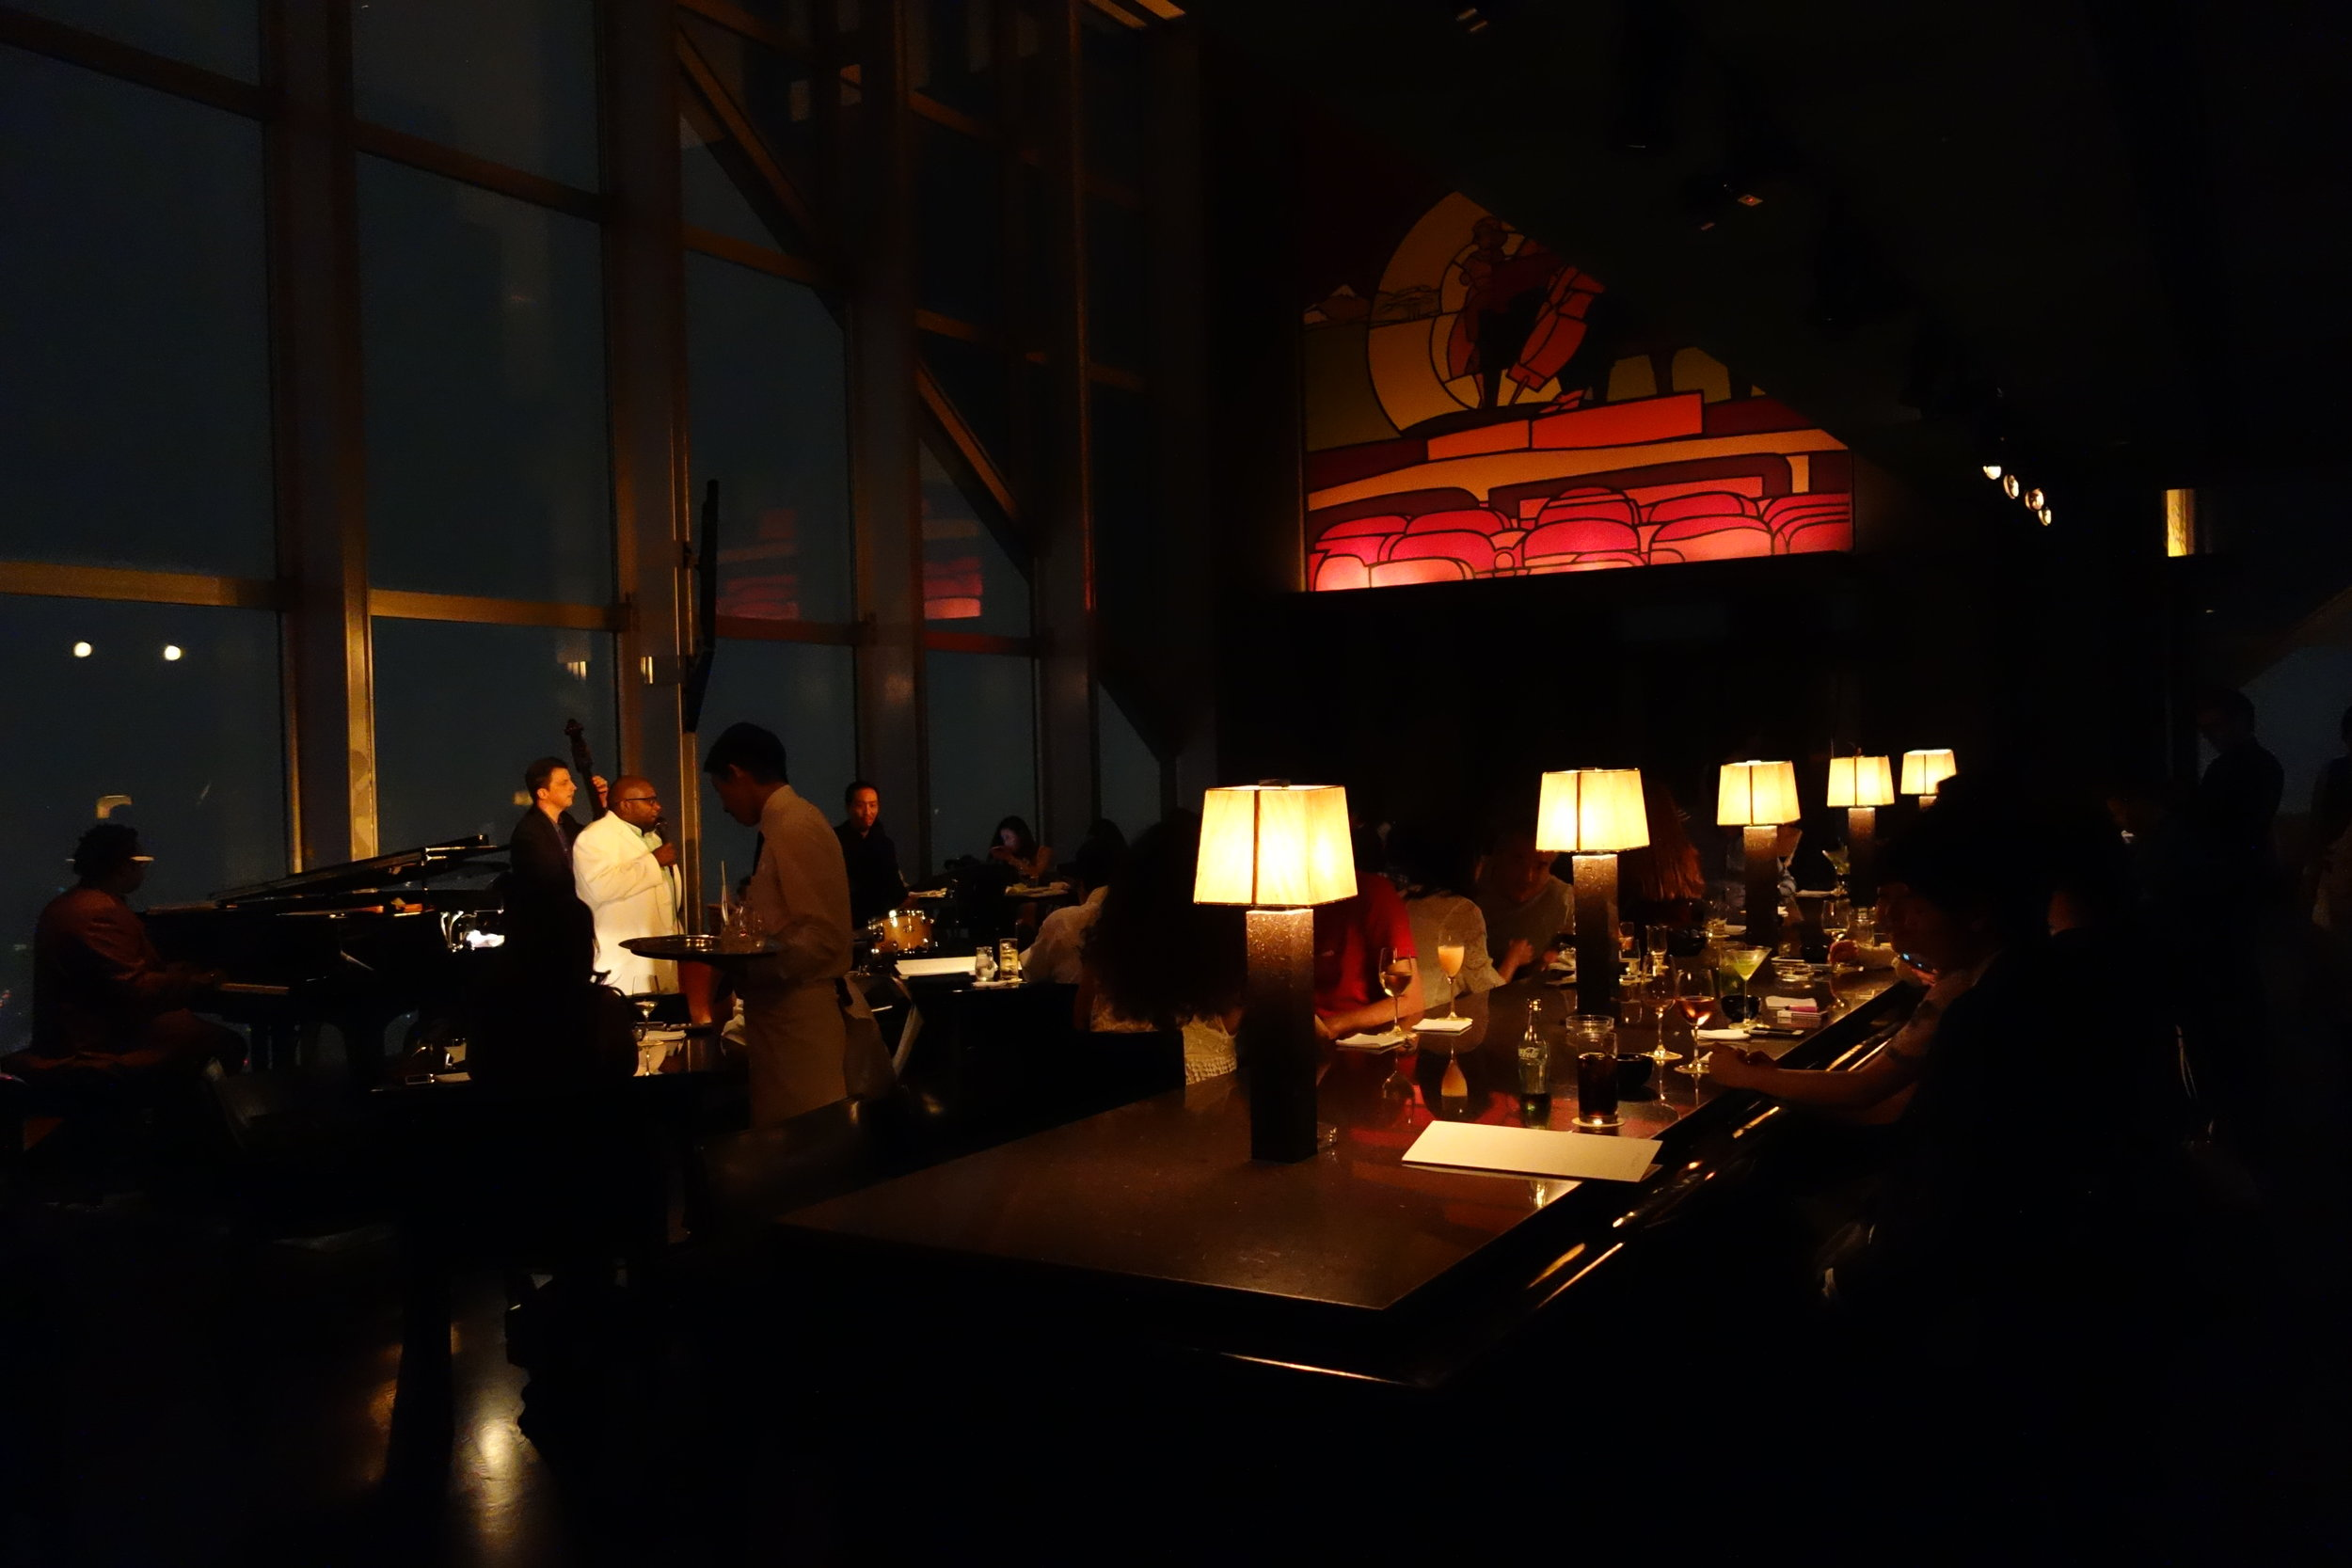 The New York Bar at the Park Hyatt Hotel in Tokyo.